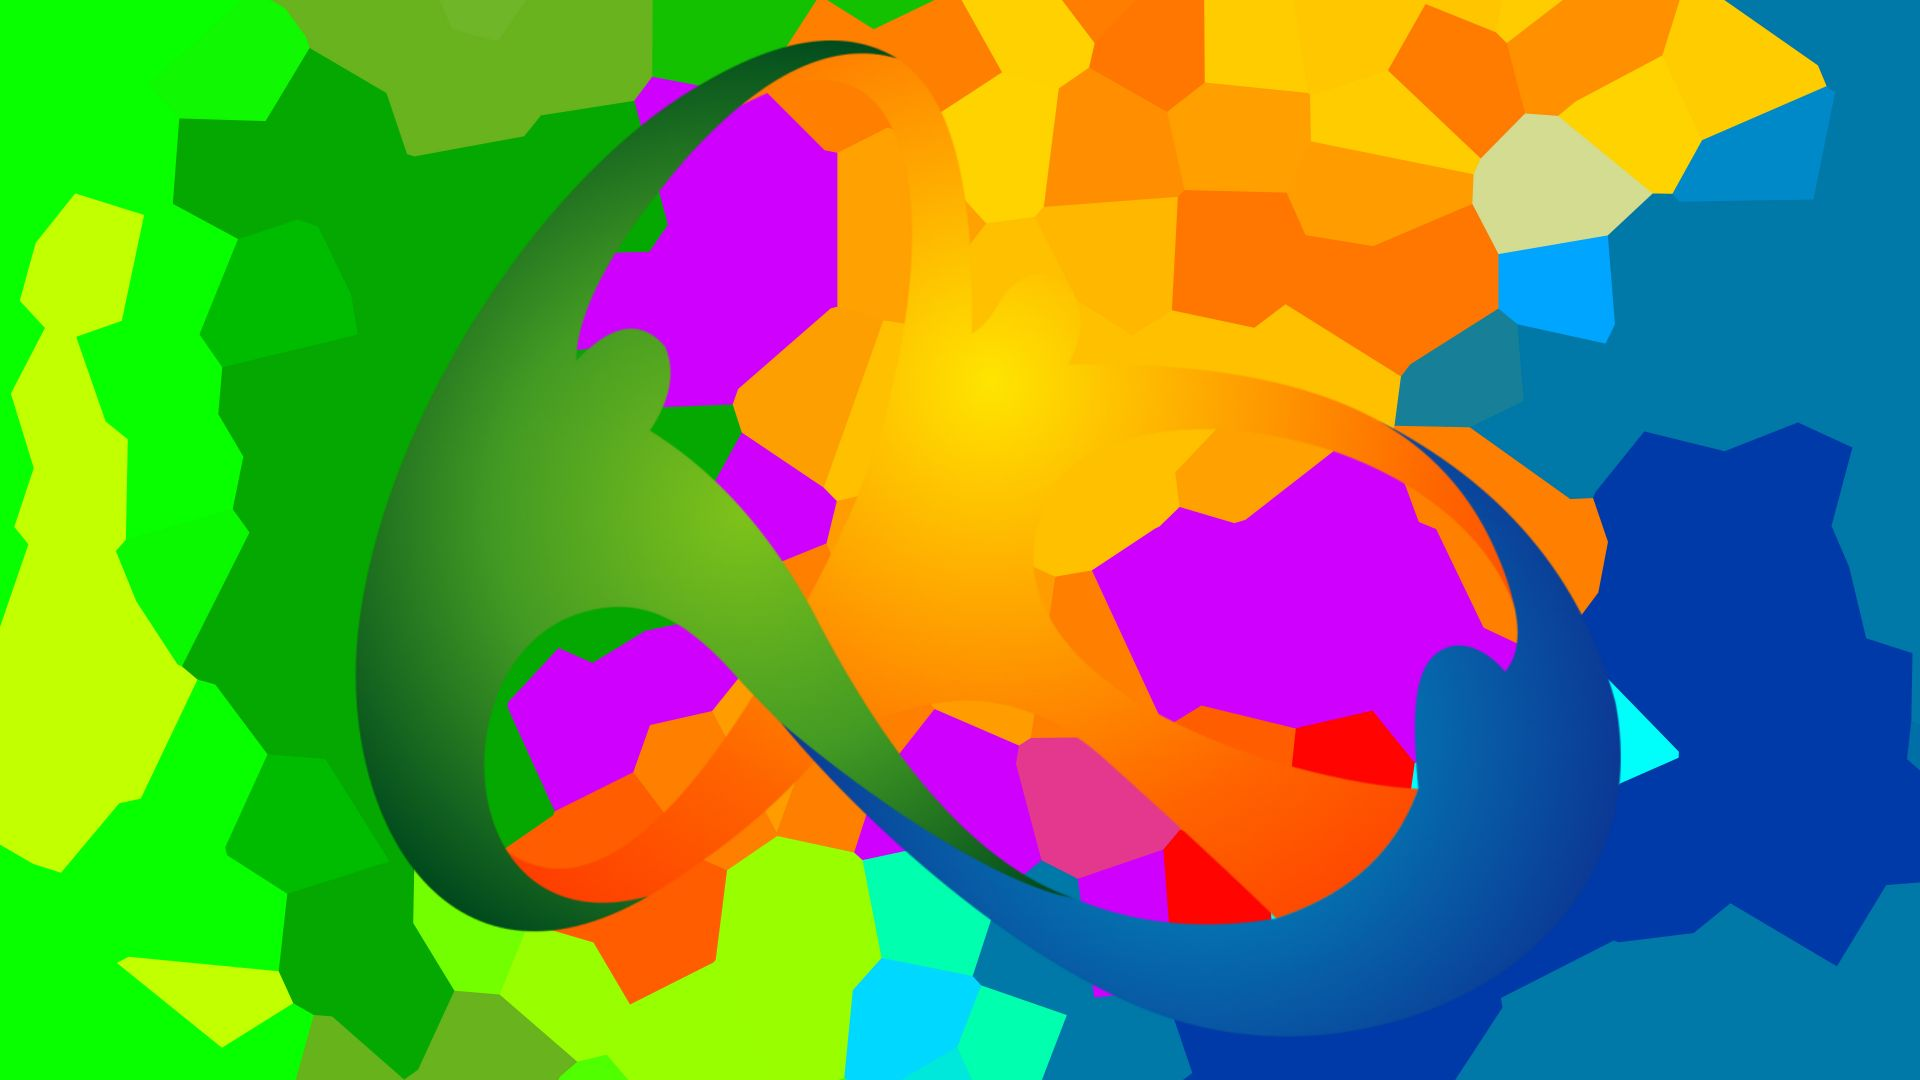 Olimpic Game 2016, 4k, 5k wallpaper, rio 2016, colorful, abstract (horizontal)